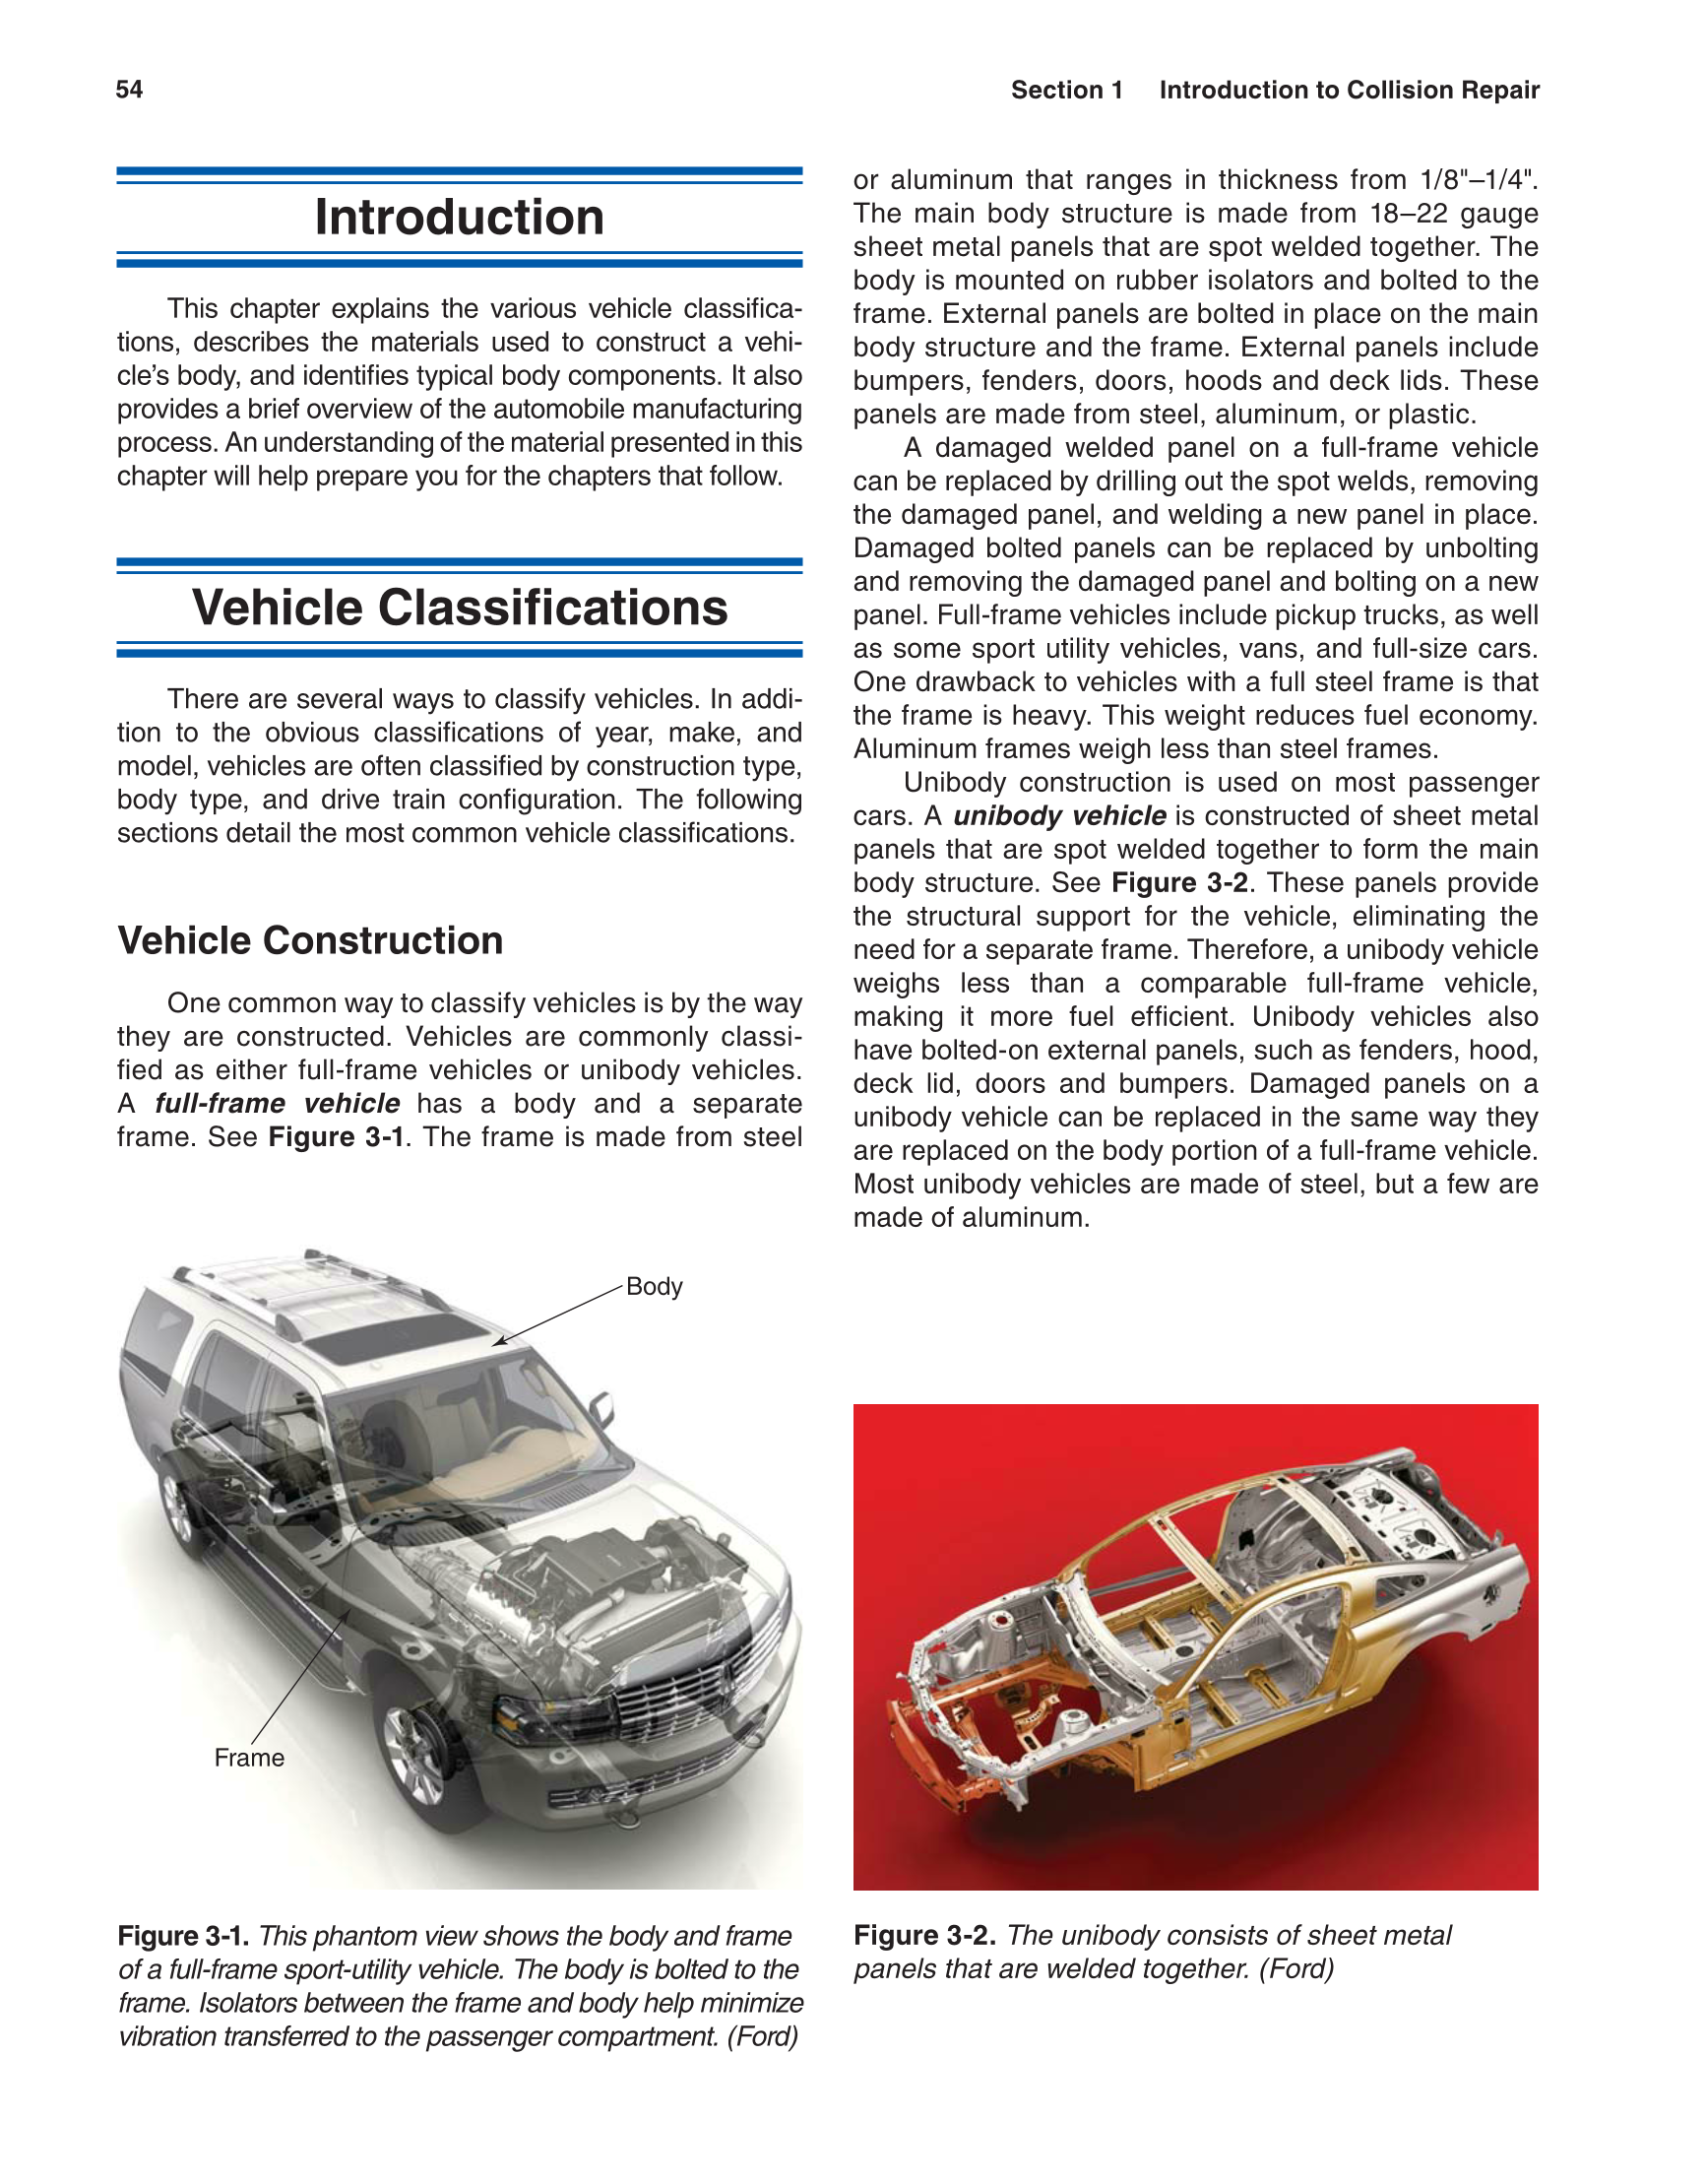 Printable: Auto Collision Repair and Refinishing, 1st Edition page 54